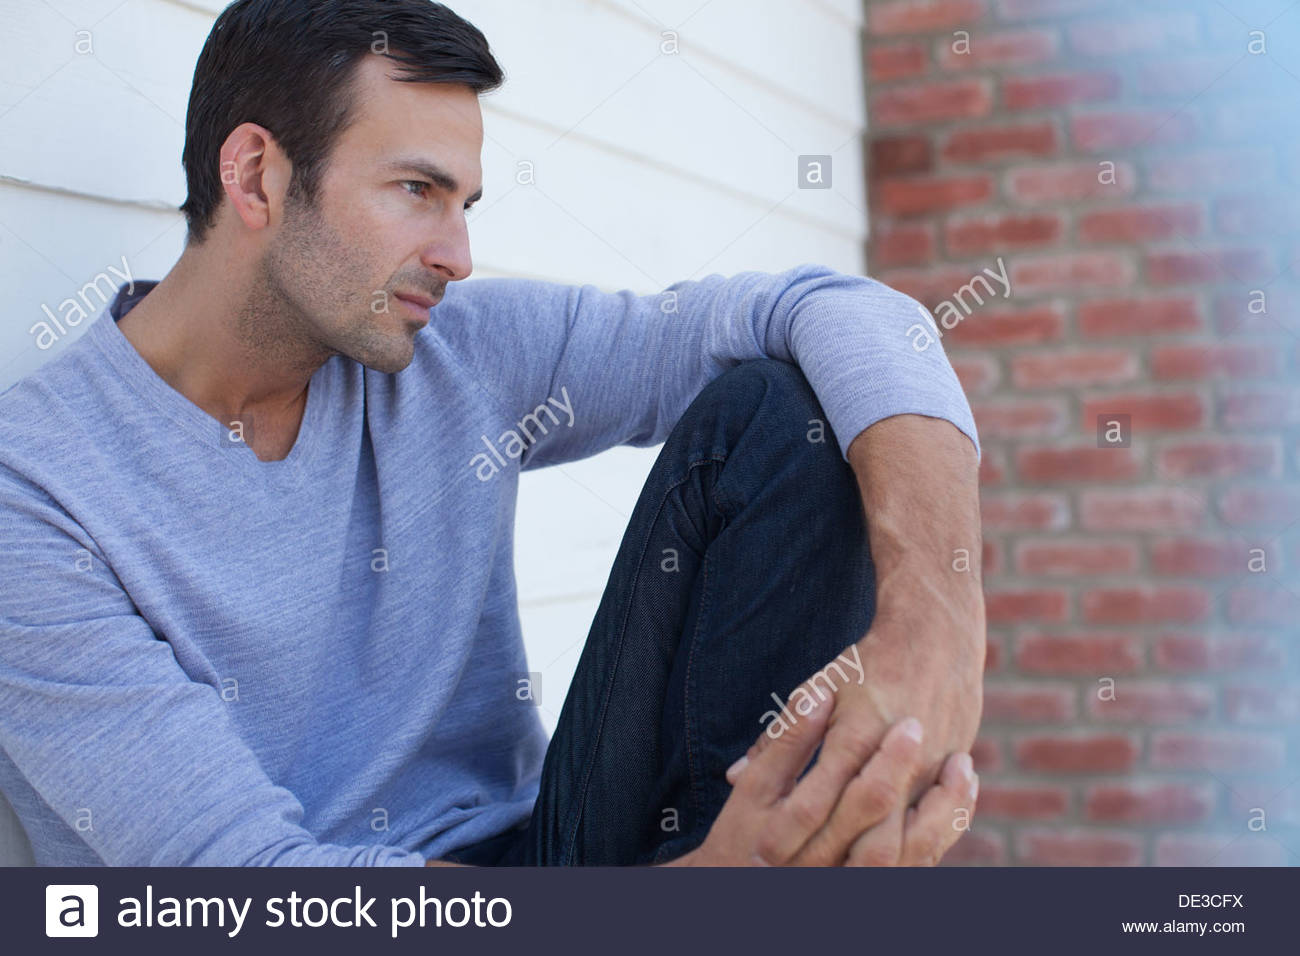 Man with hands clasped - Stock Image